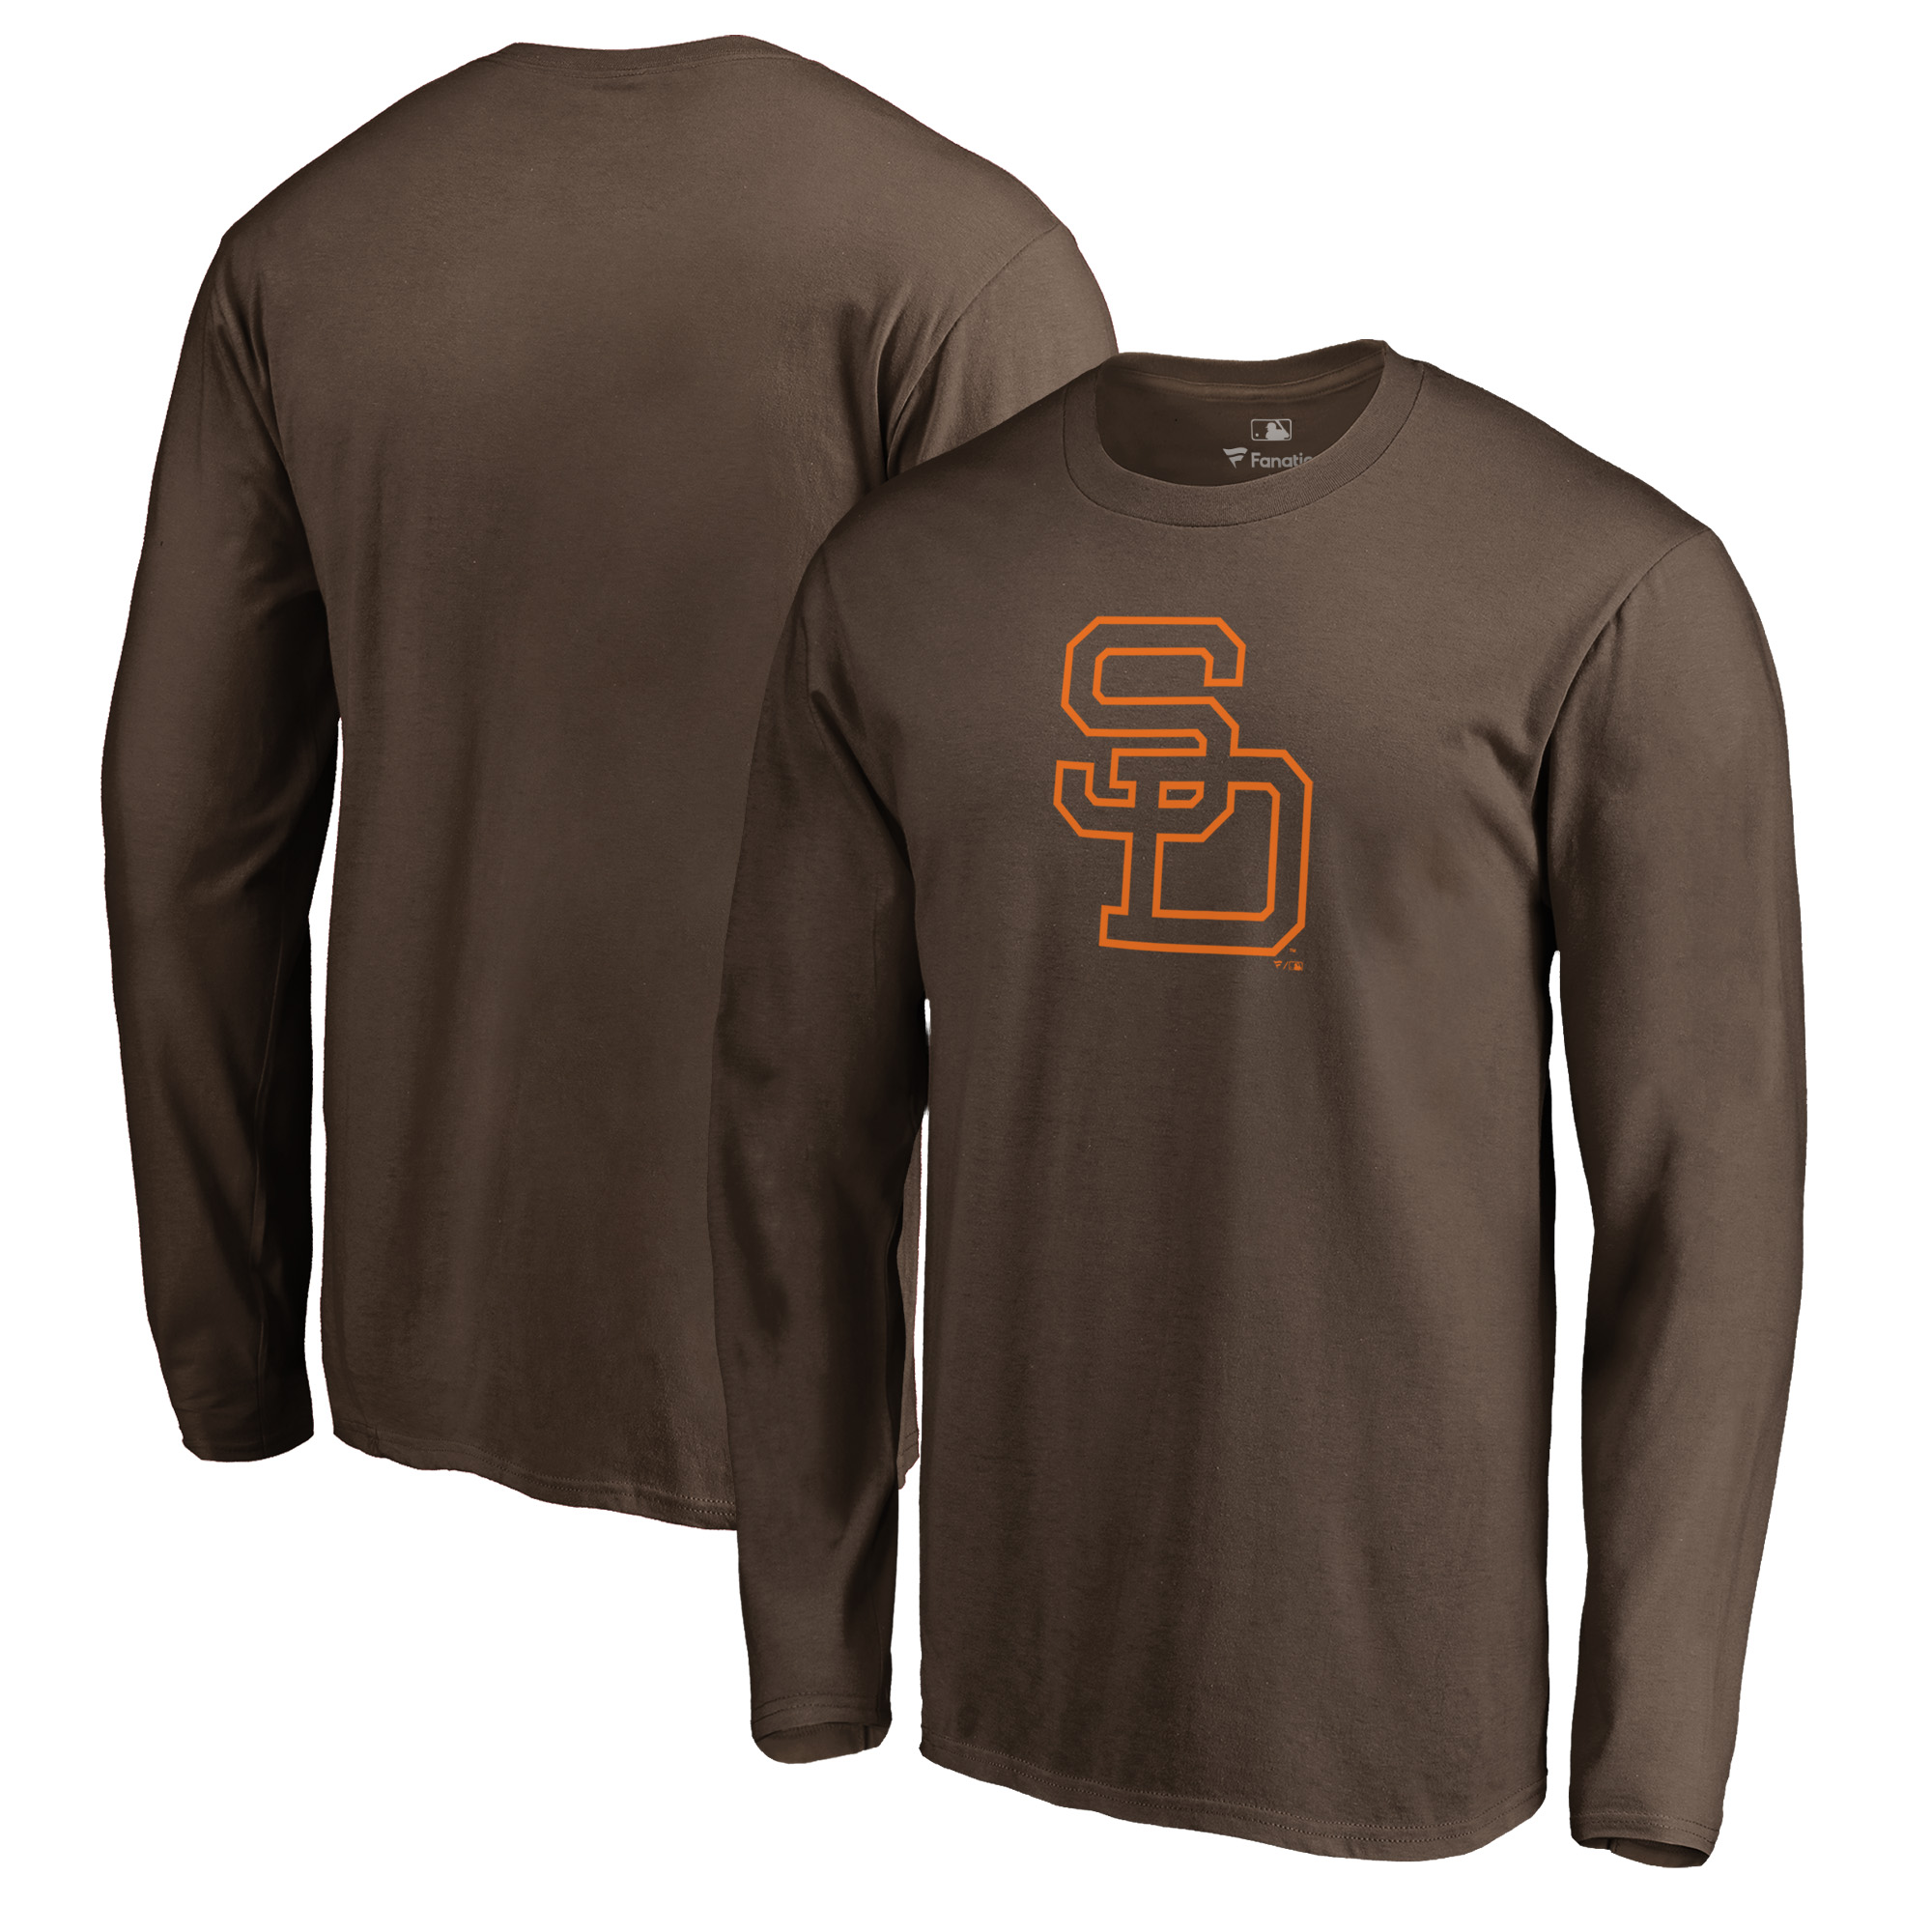 San Diego Padres Fanatics Branded Cooperstown Collection Huntington Long Sleeve T-Shirt - Brown